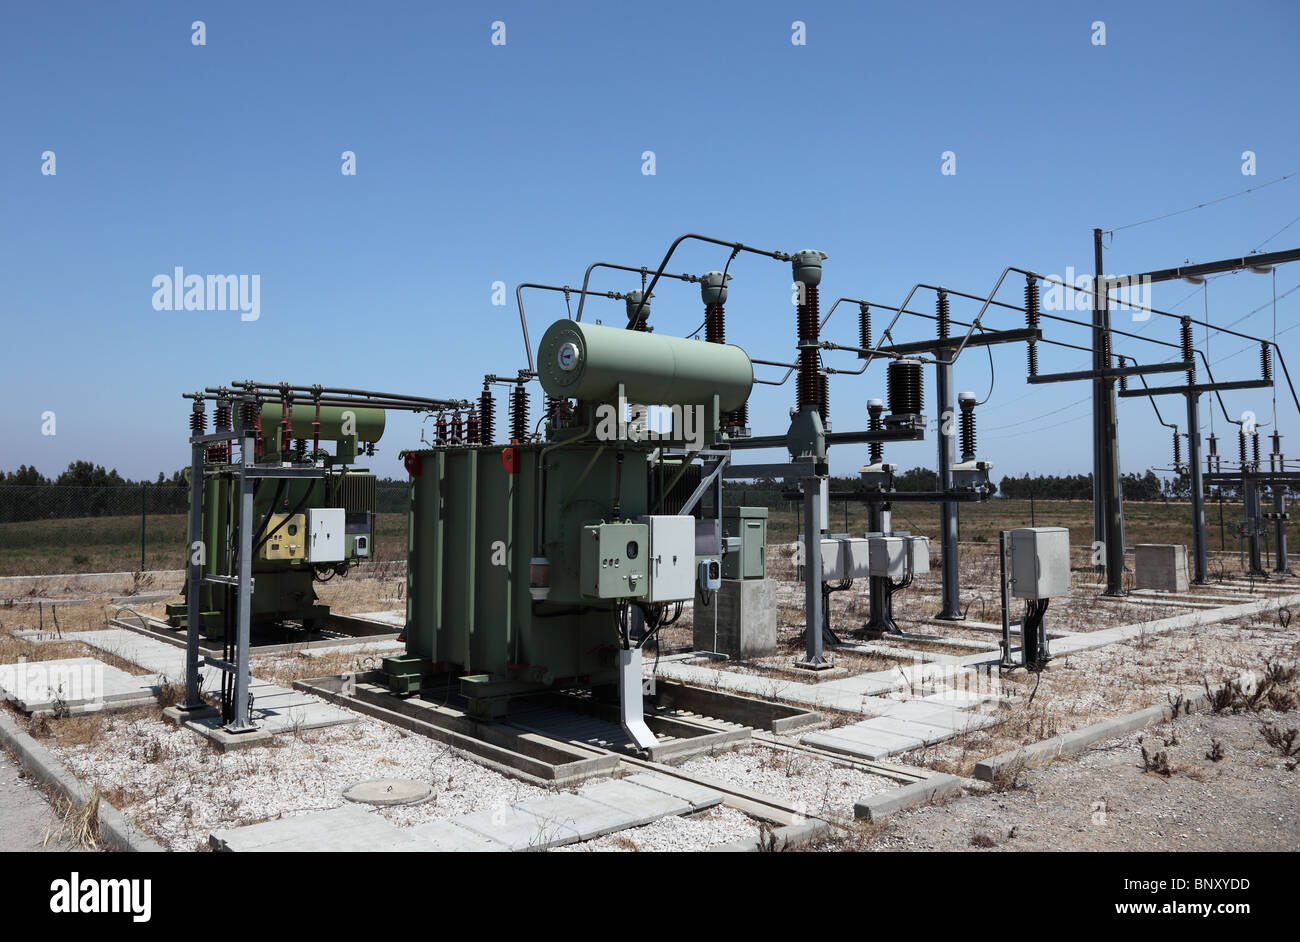 High voltage electric converter station Stock Photo: 30710441 - Alamy